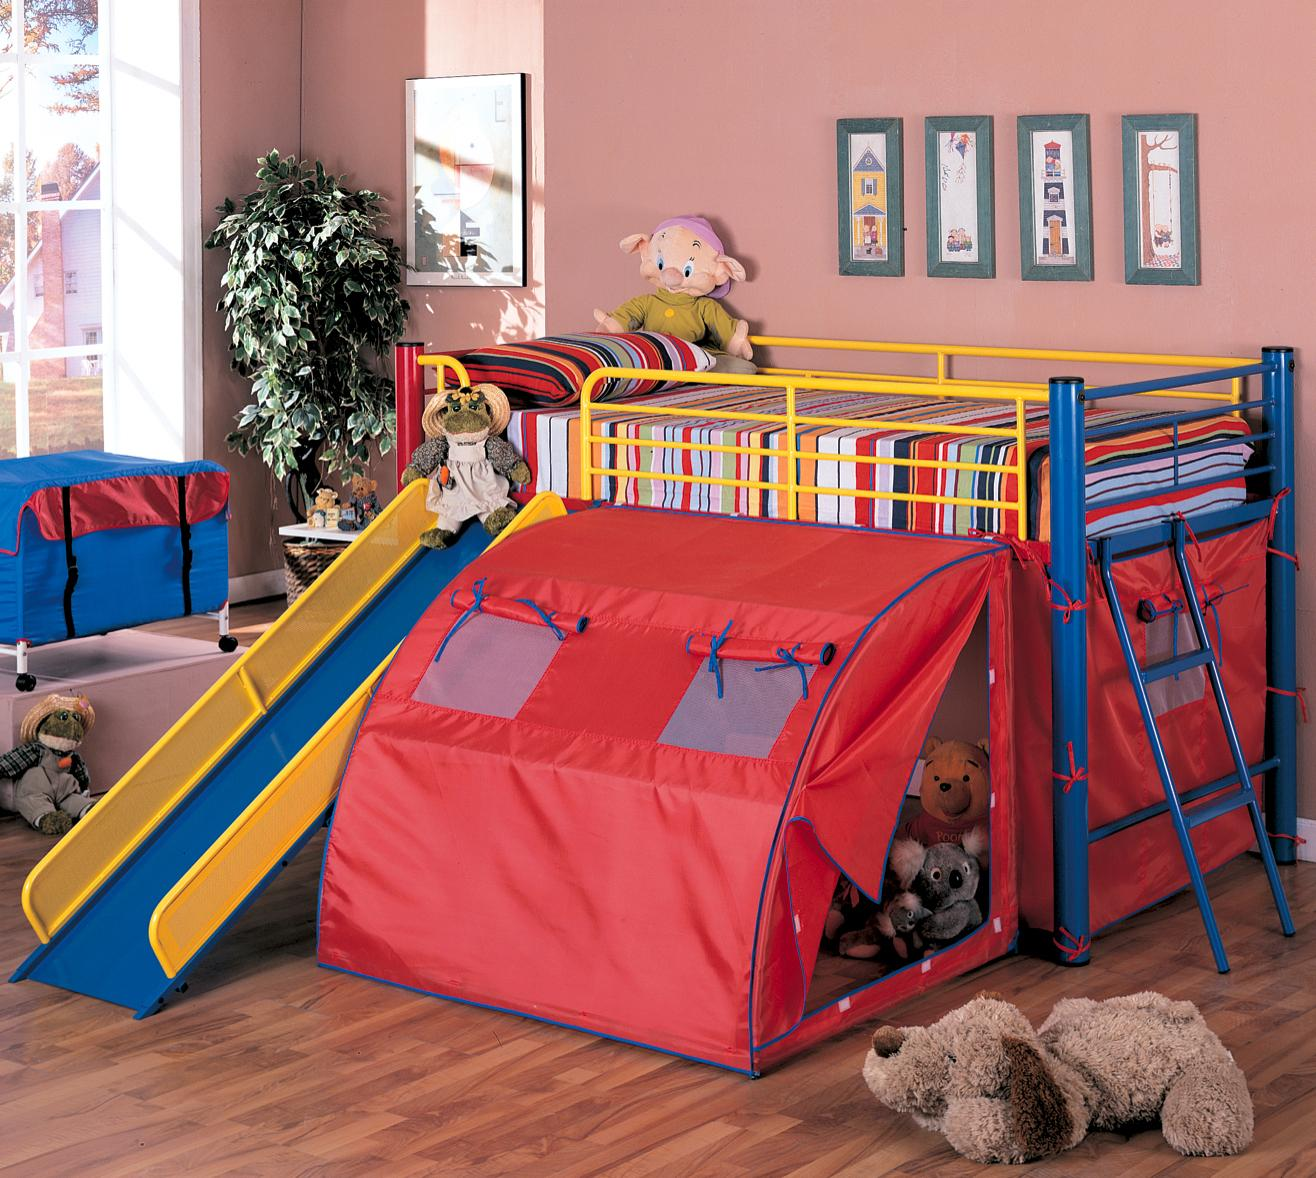 Bunk beds with slide and tent - Bunk Beds With Slide And Tent 17